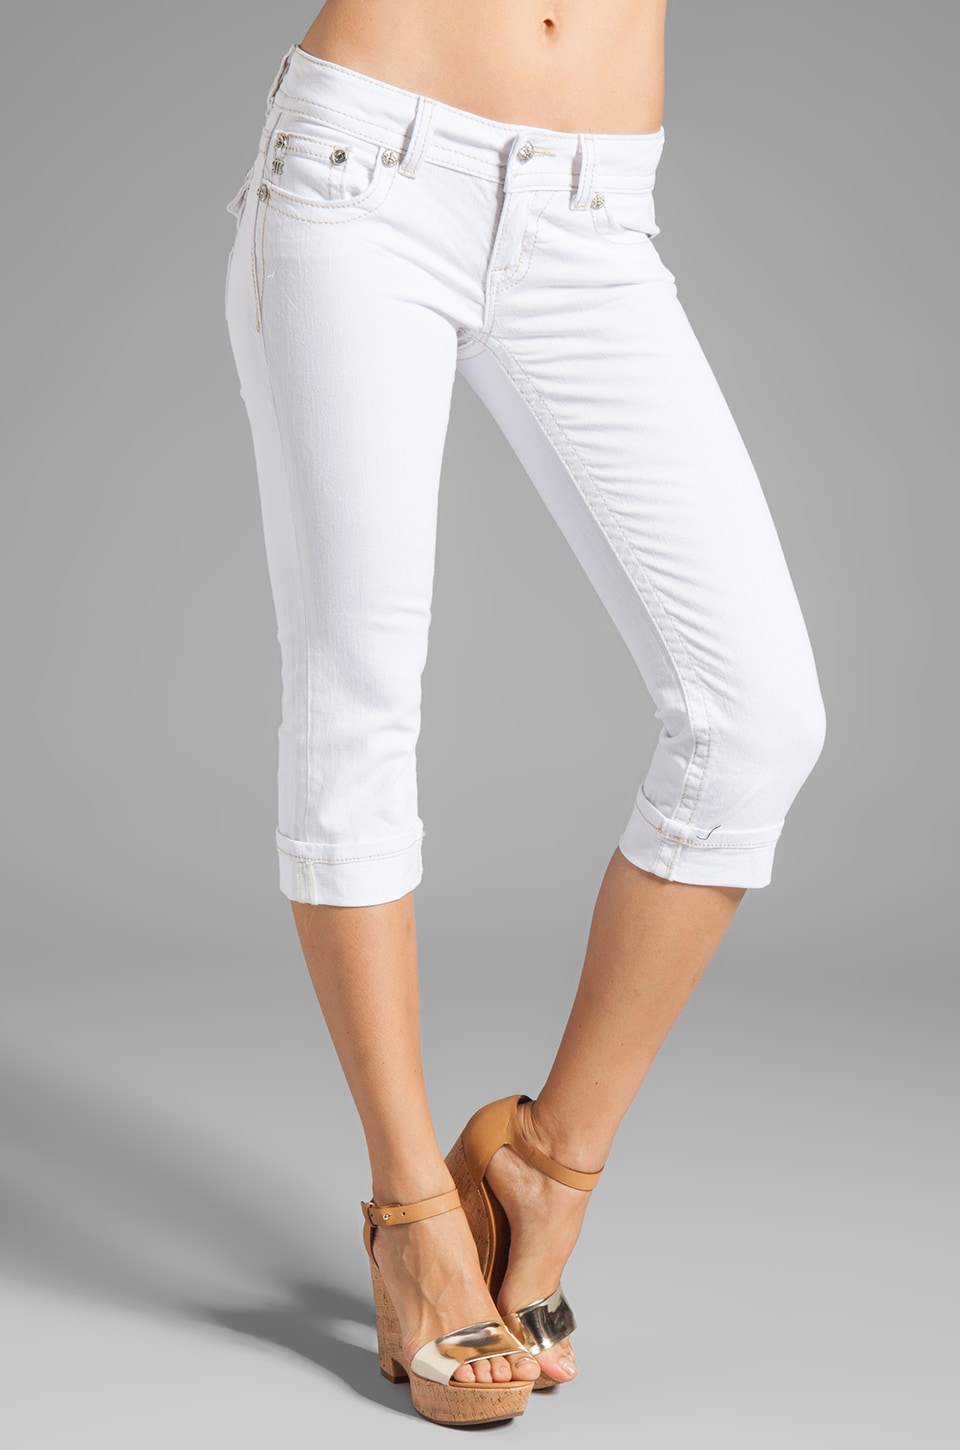 White Denim Capri Pants - Pant Row